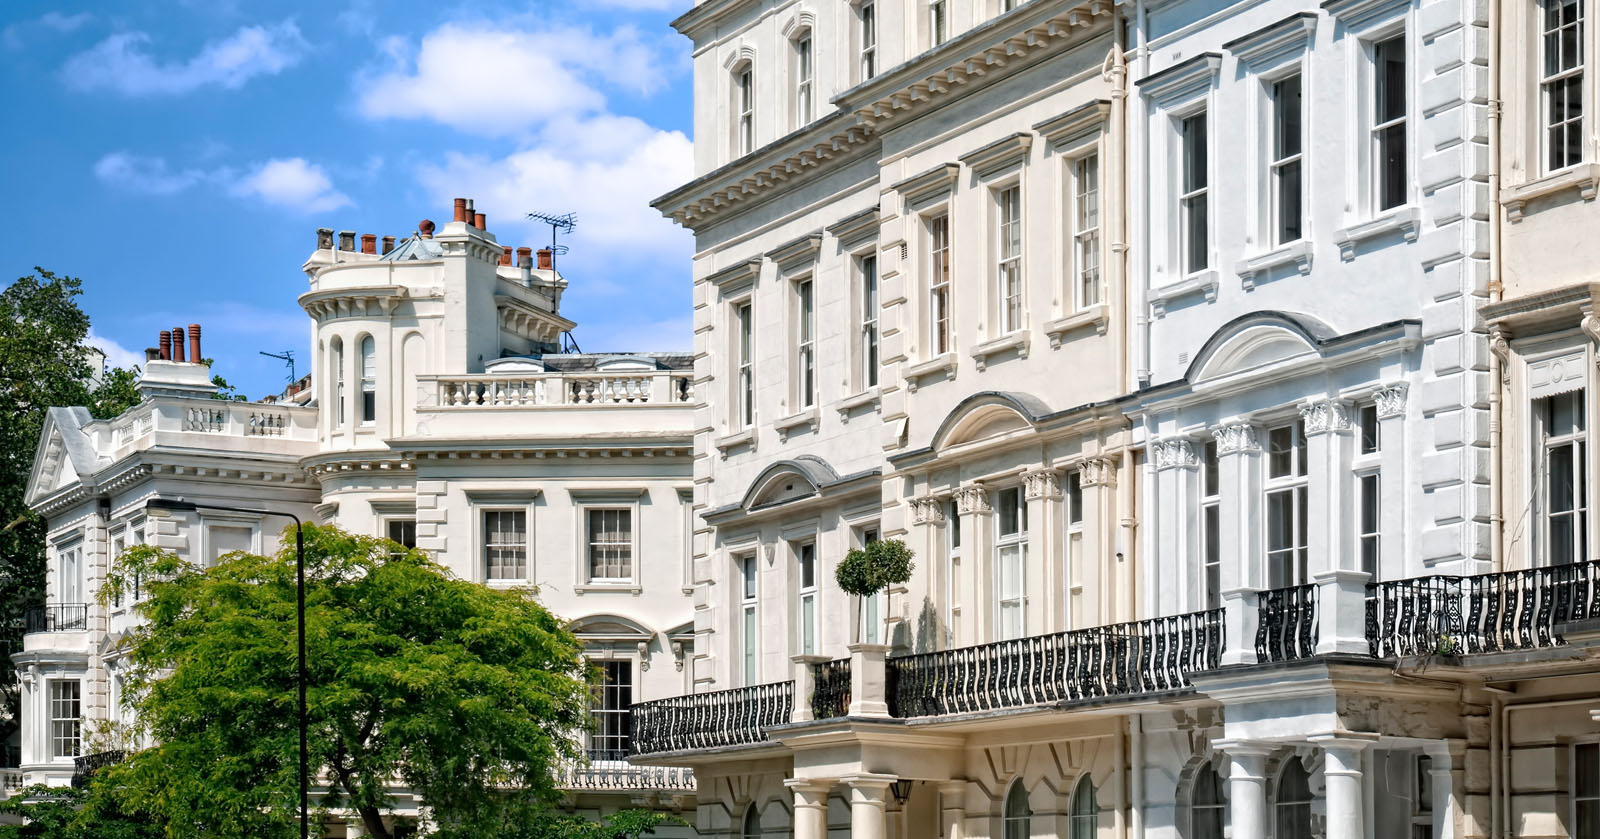 New ONS stats show average London rents fall in real terms - https://roomslocal.co.uk/blog/new-ons-stats-show-average-london-rents-fall-in-real-terms #stats #show #average #london #rents